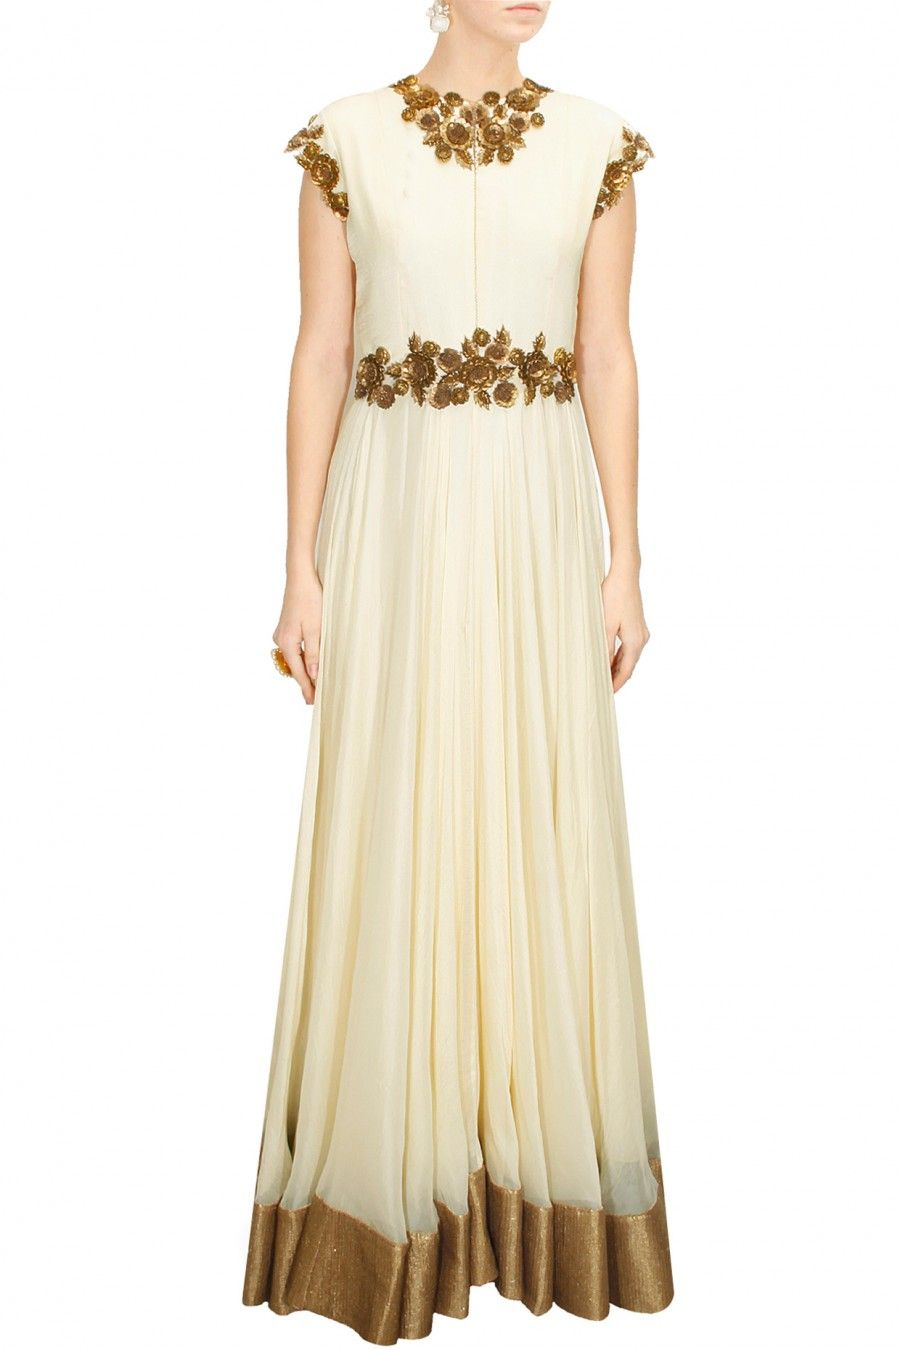 Deccan dreams cream sequins and metal flower embellished flared